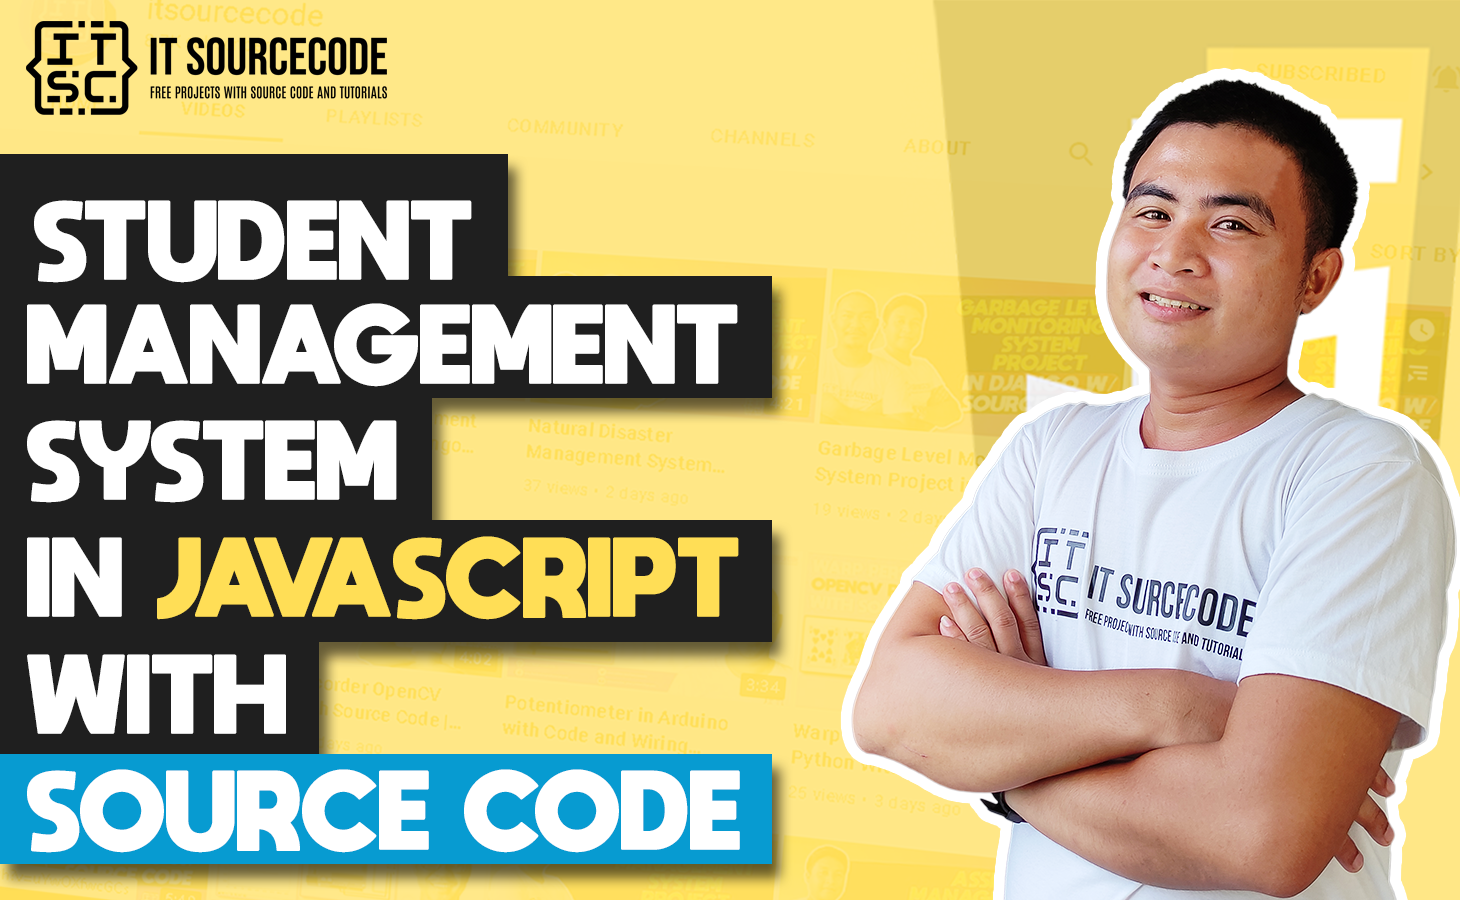 Student Management System In Javascript With Source Code